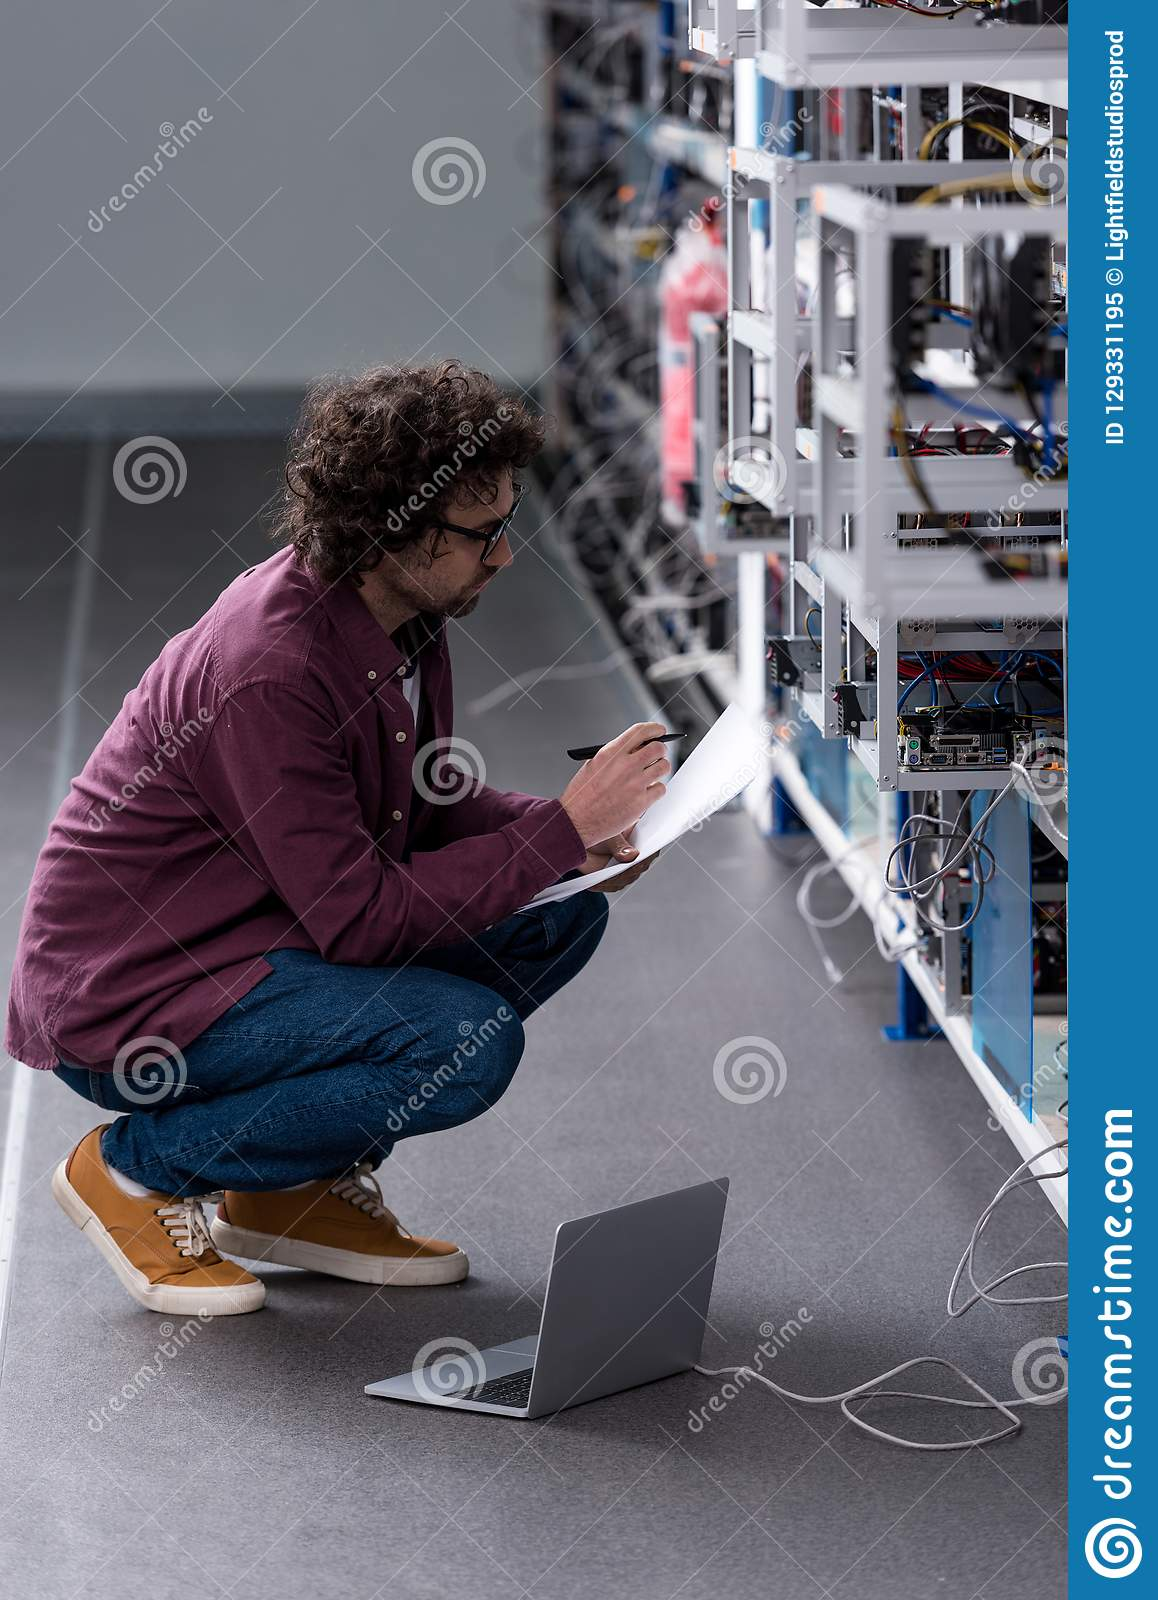 Serious computer engineer working while sitting on floor at cryptocurrency mining farm royalty free stock photo